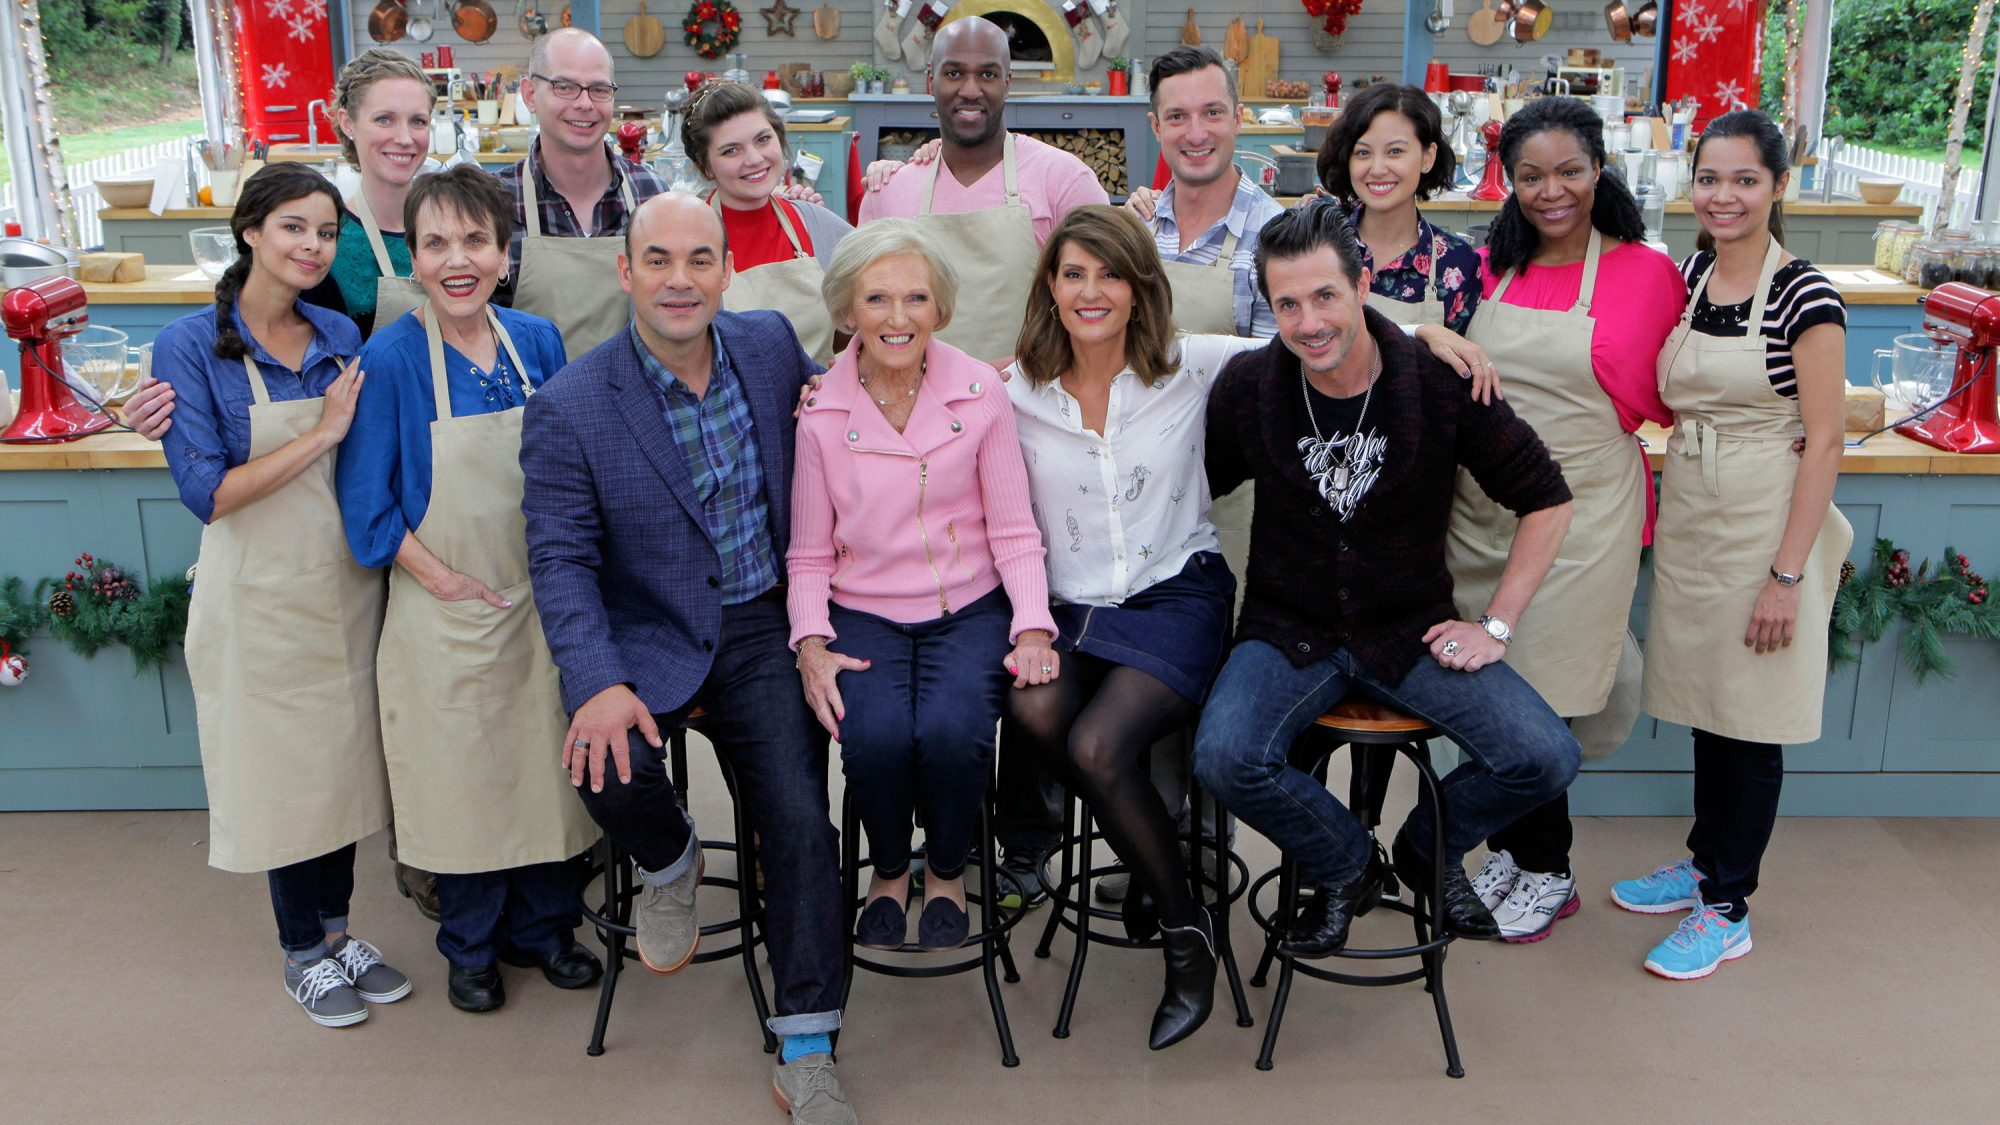 'Great American Baking Show' pulled, judge fired over sexual harassment allegations